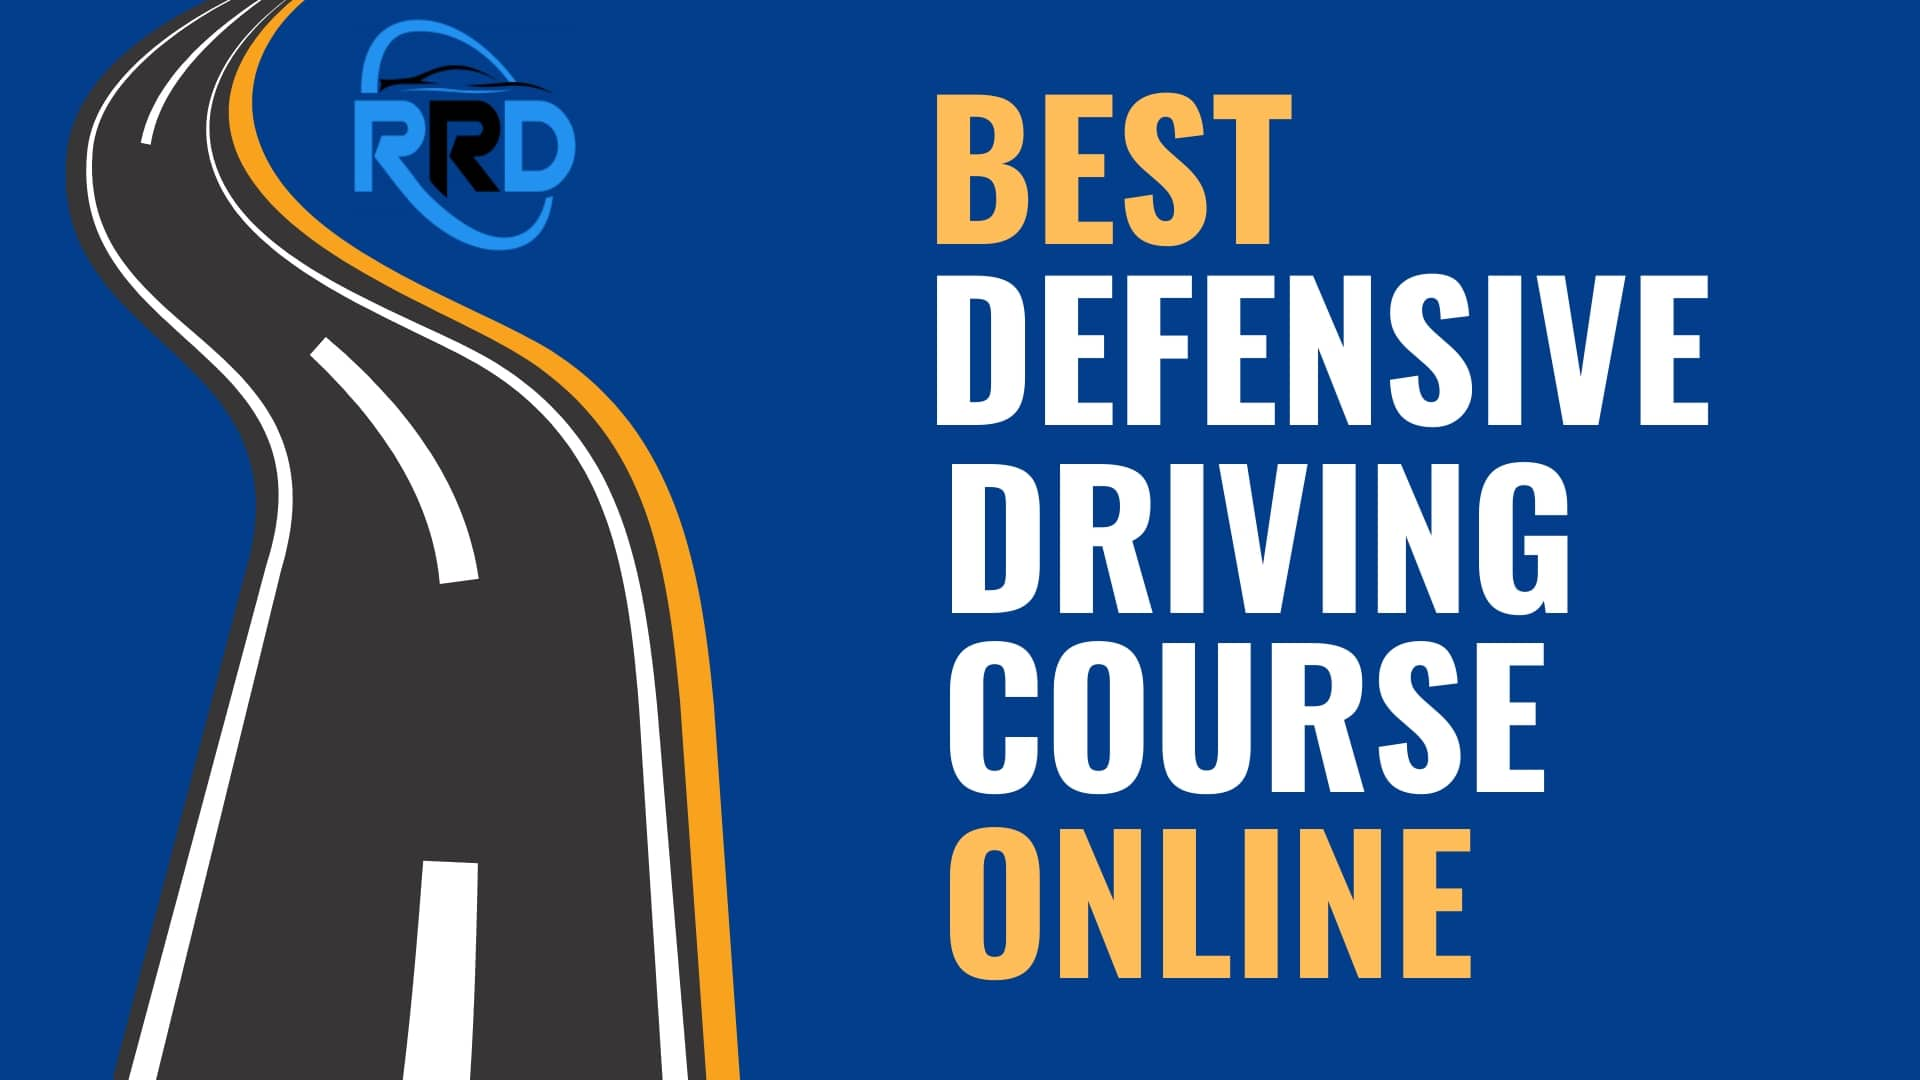 best online defensive driving course